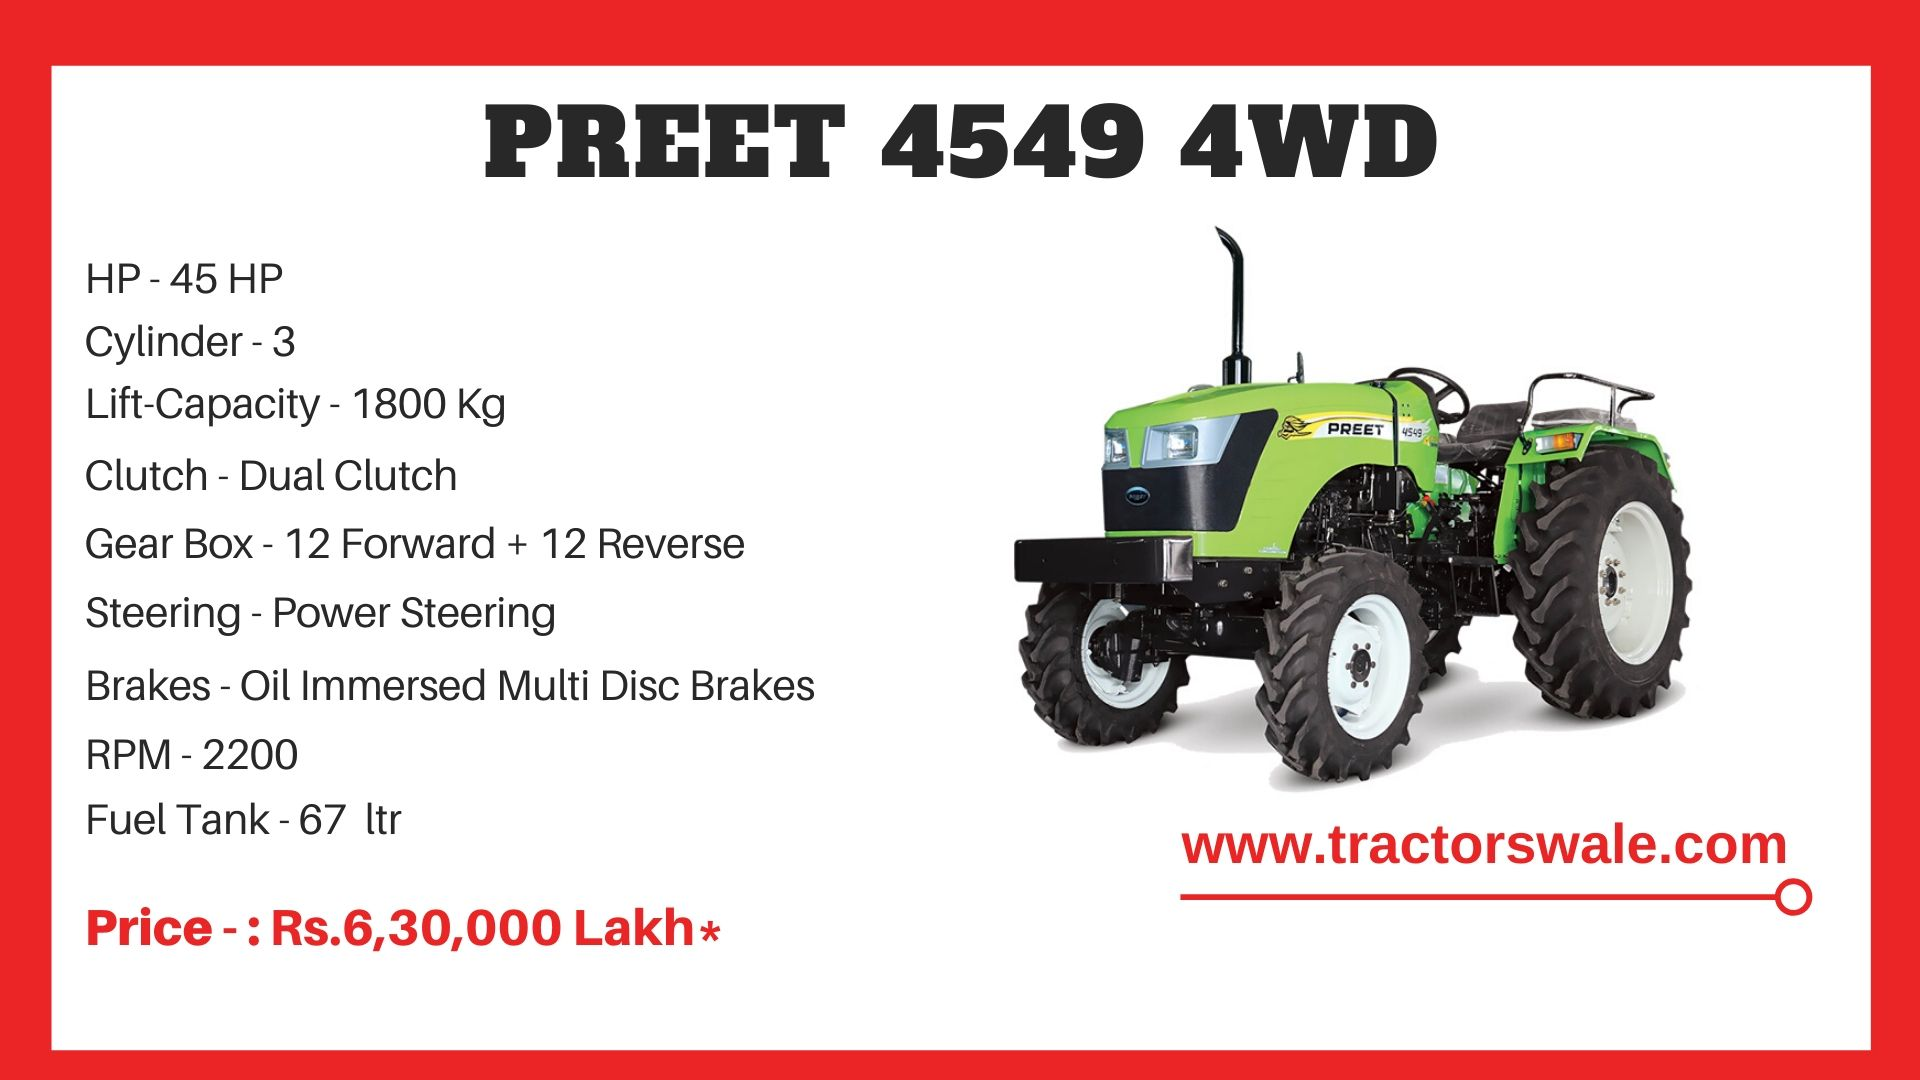 Preet 4549 4WD Tractor price